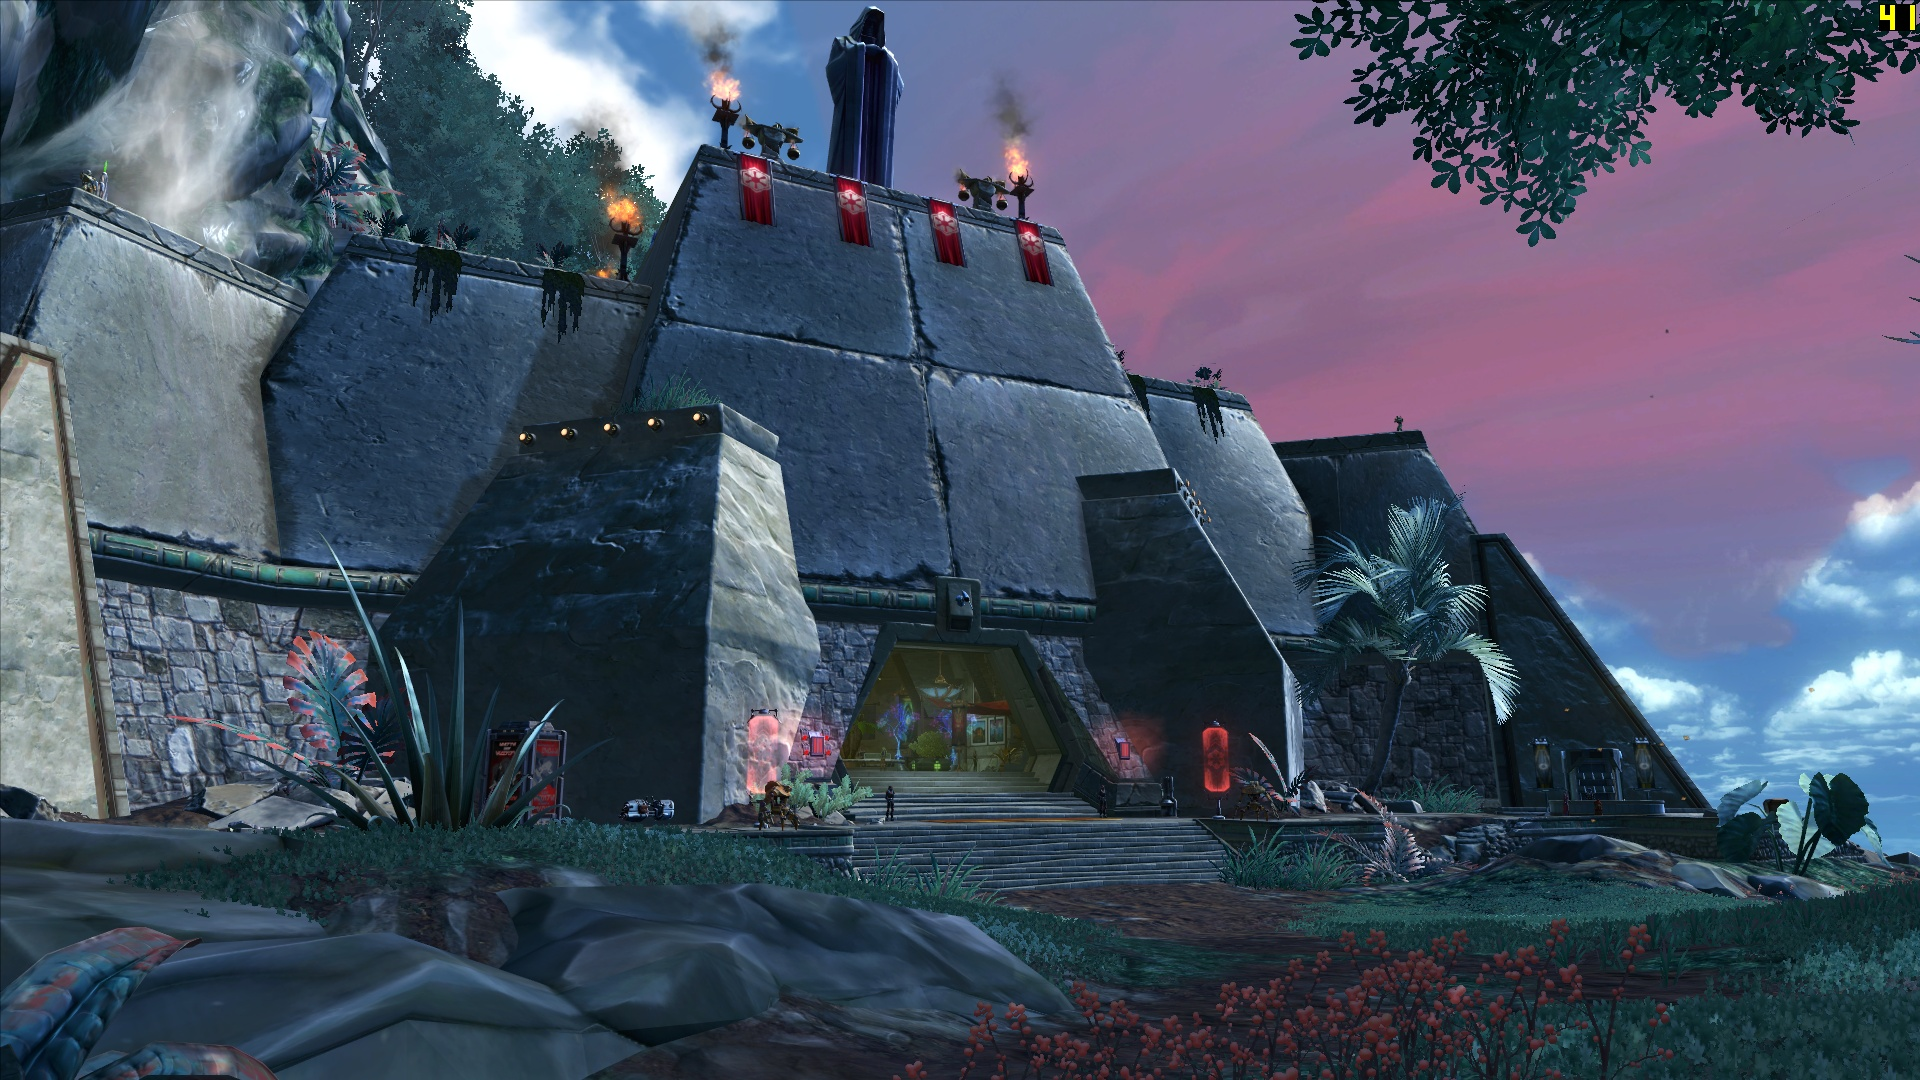 Brex's Imperial Stronghold – The Ebon Hawk